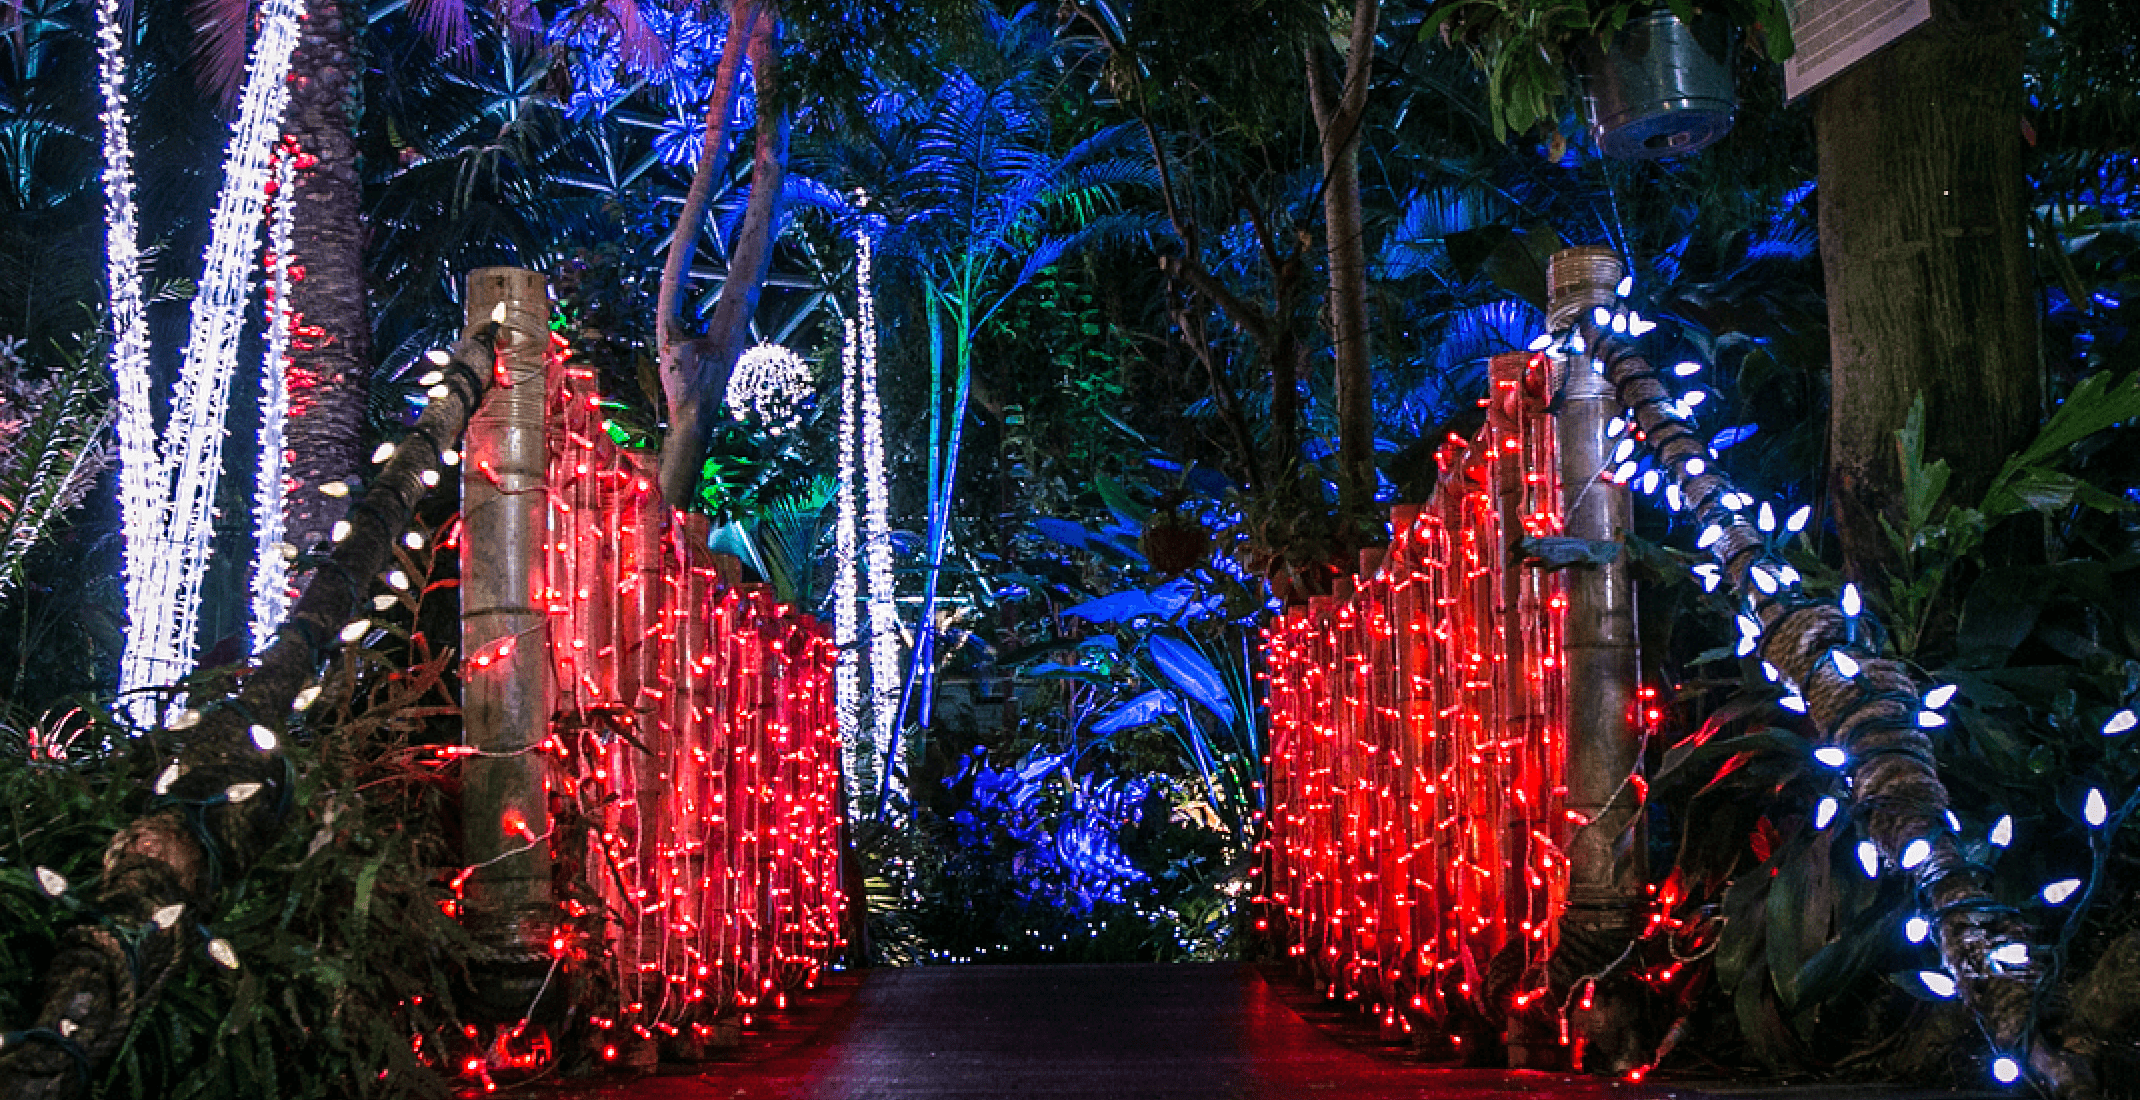 Vancouver's Bloedel Conservatory turns into a tropical holiday wonderland this month